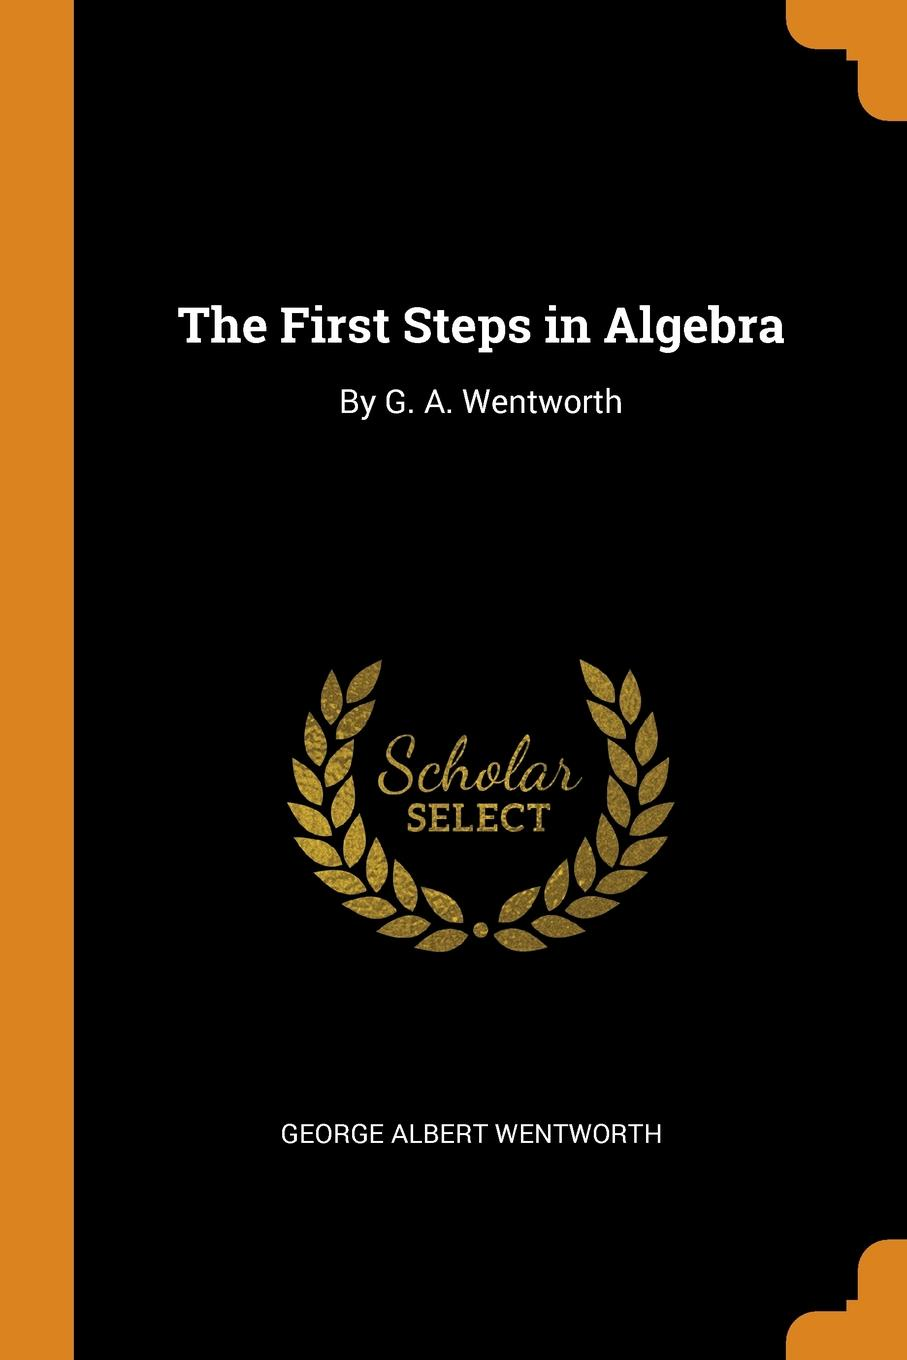 The First Steps in Algebra. By G. A. Wentworth